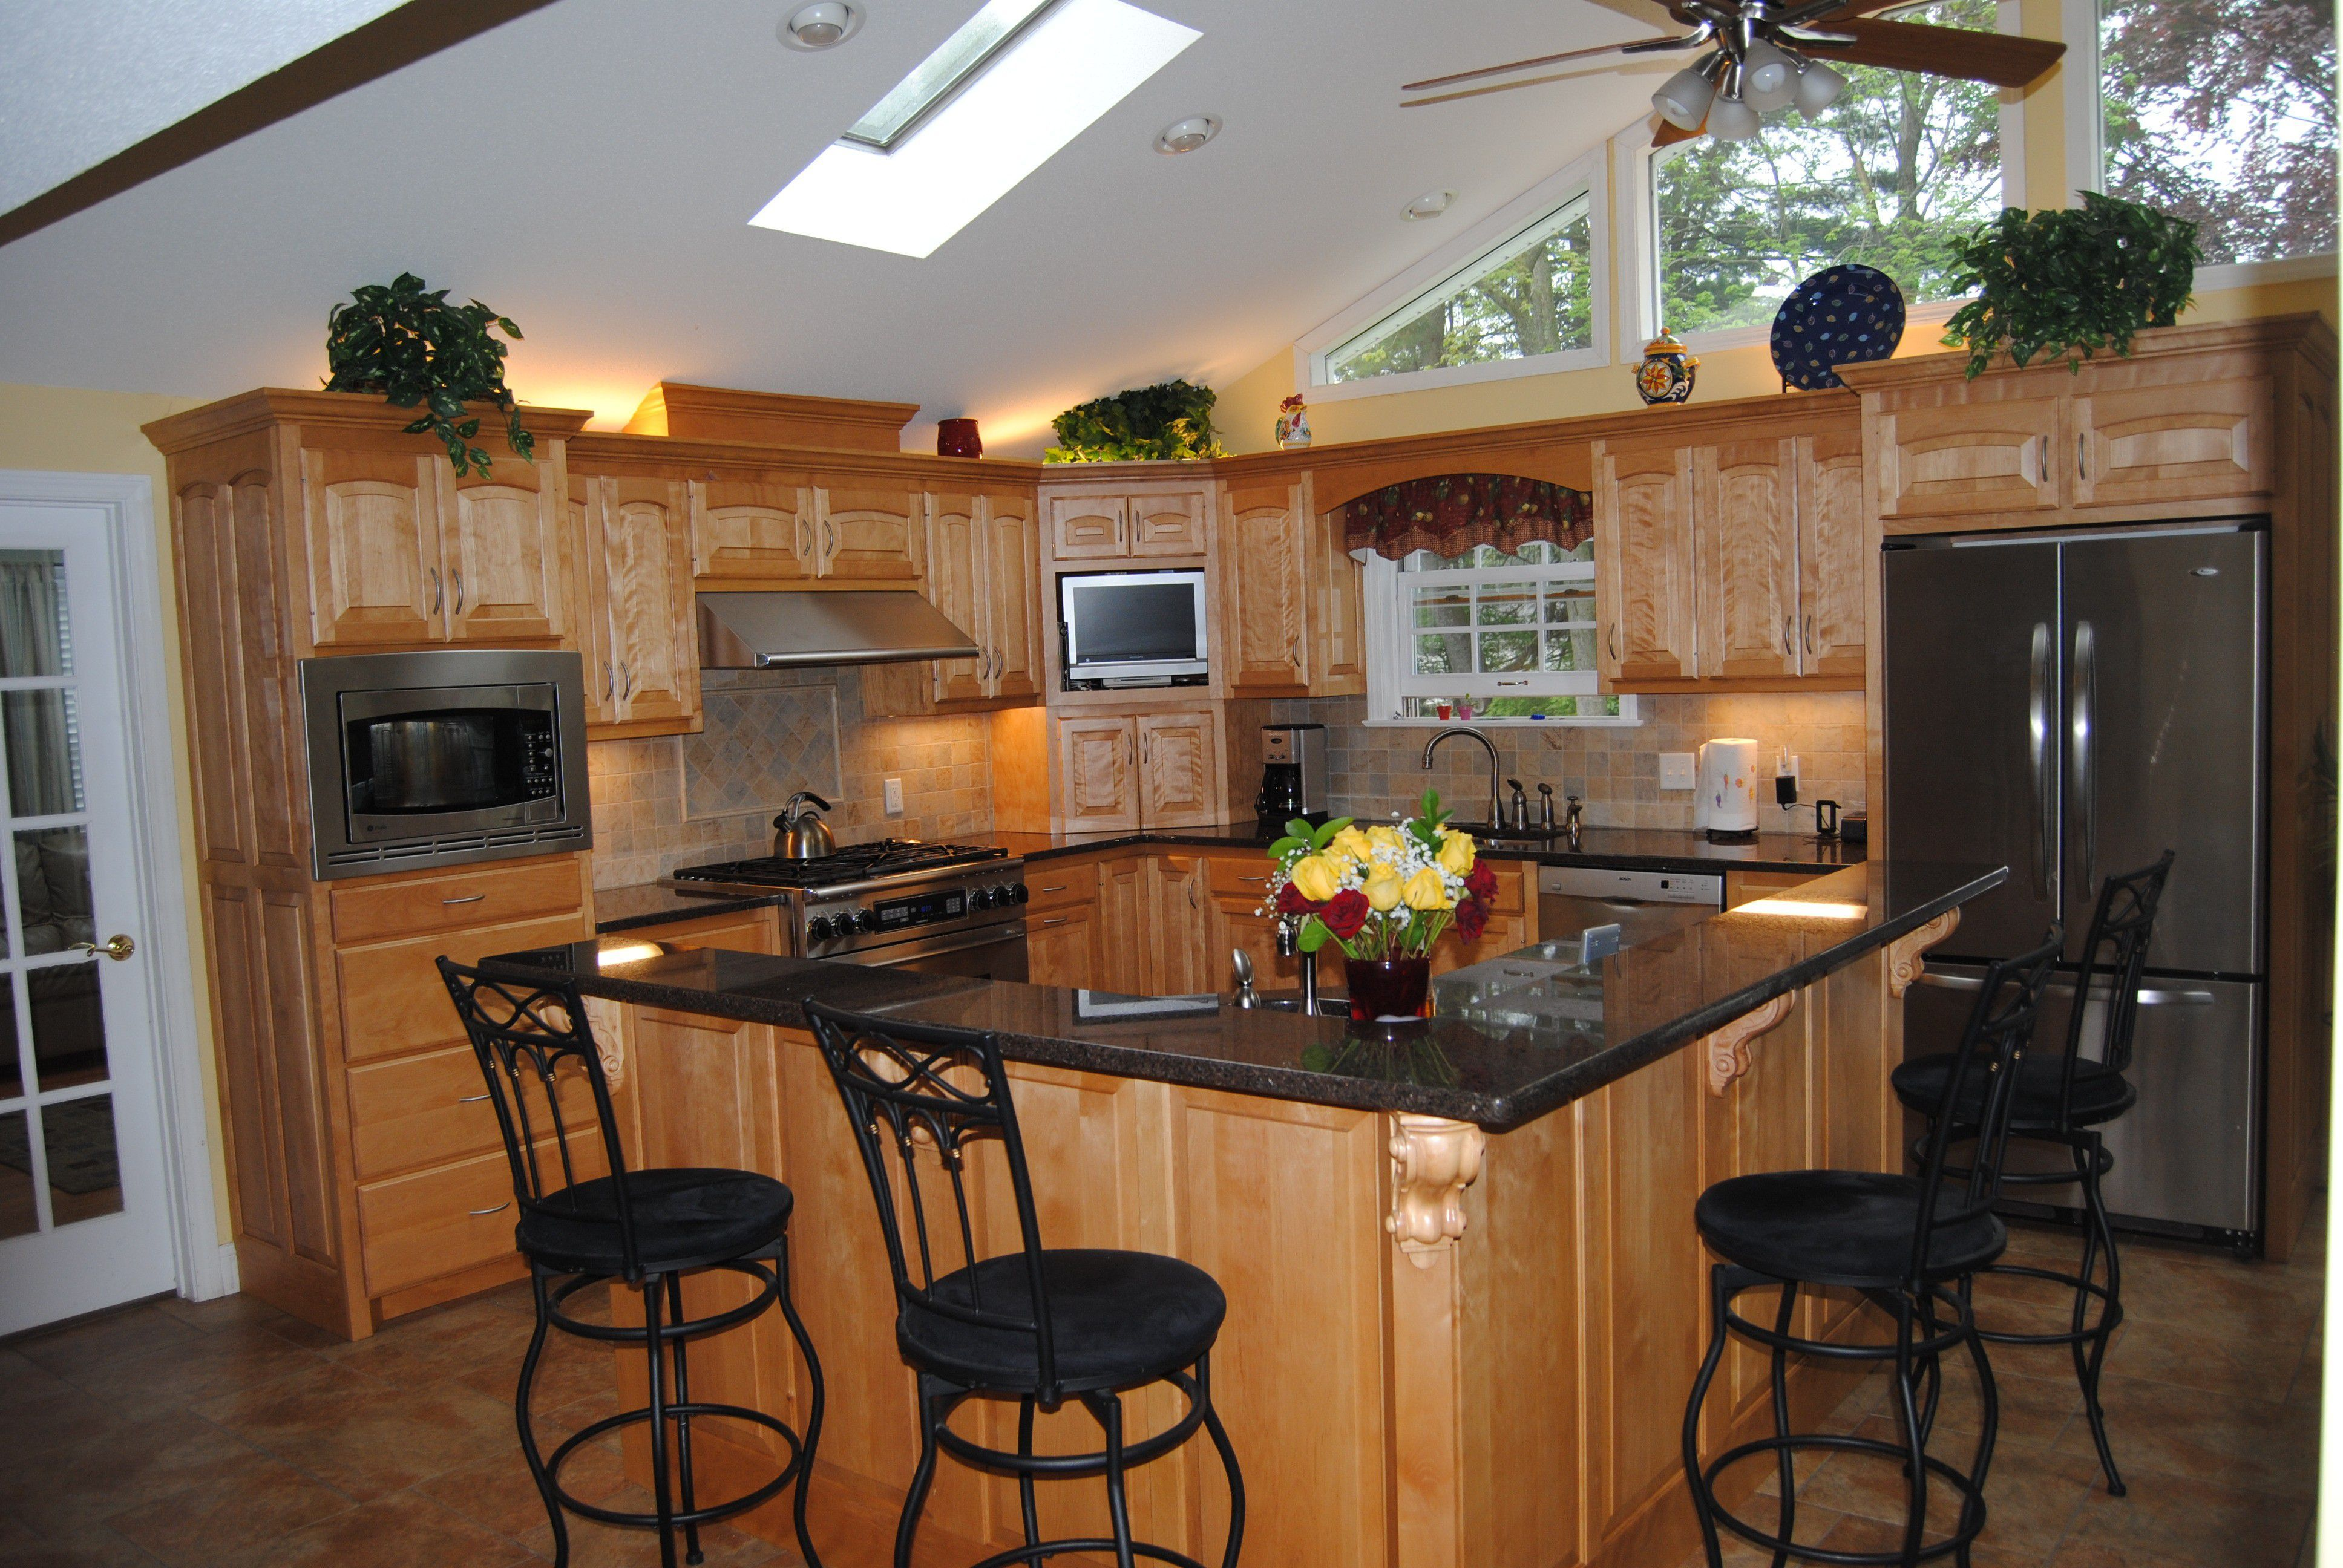 Attractive L Shaped Kitchen Island Closed Black Barstools Color On Amusing Floor Cheap Kitchen Remodel Kitchen Island With Seating L Shape Kitchen Layout